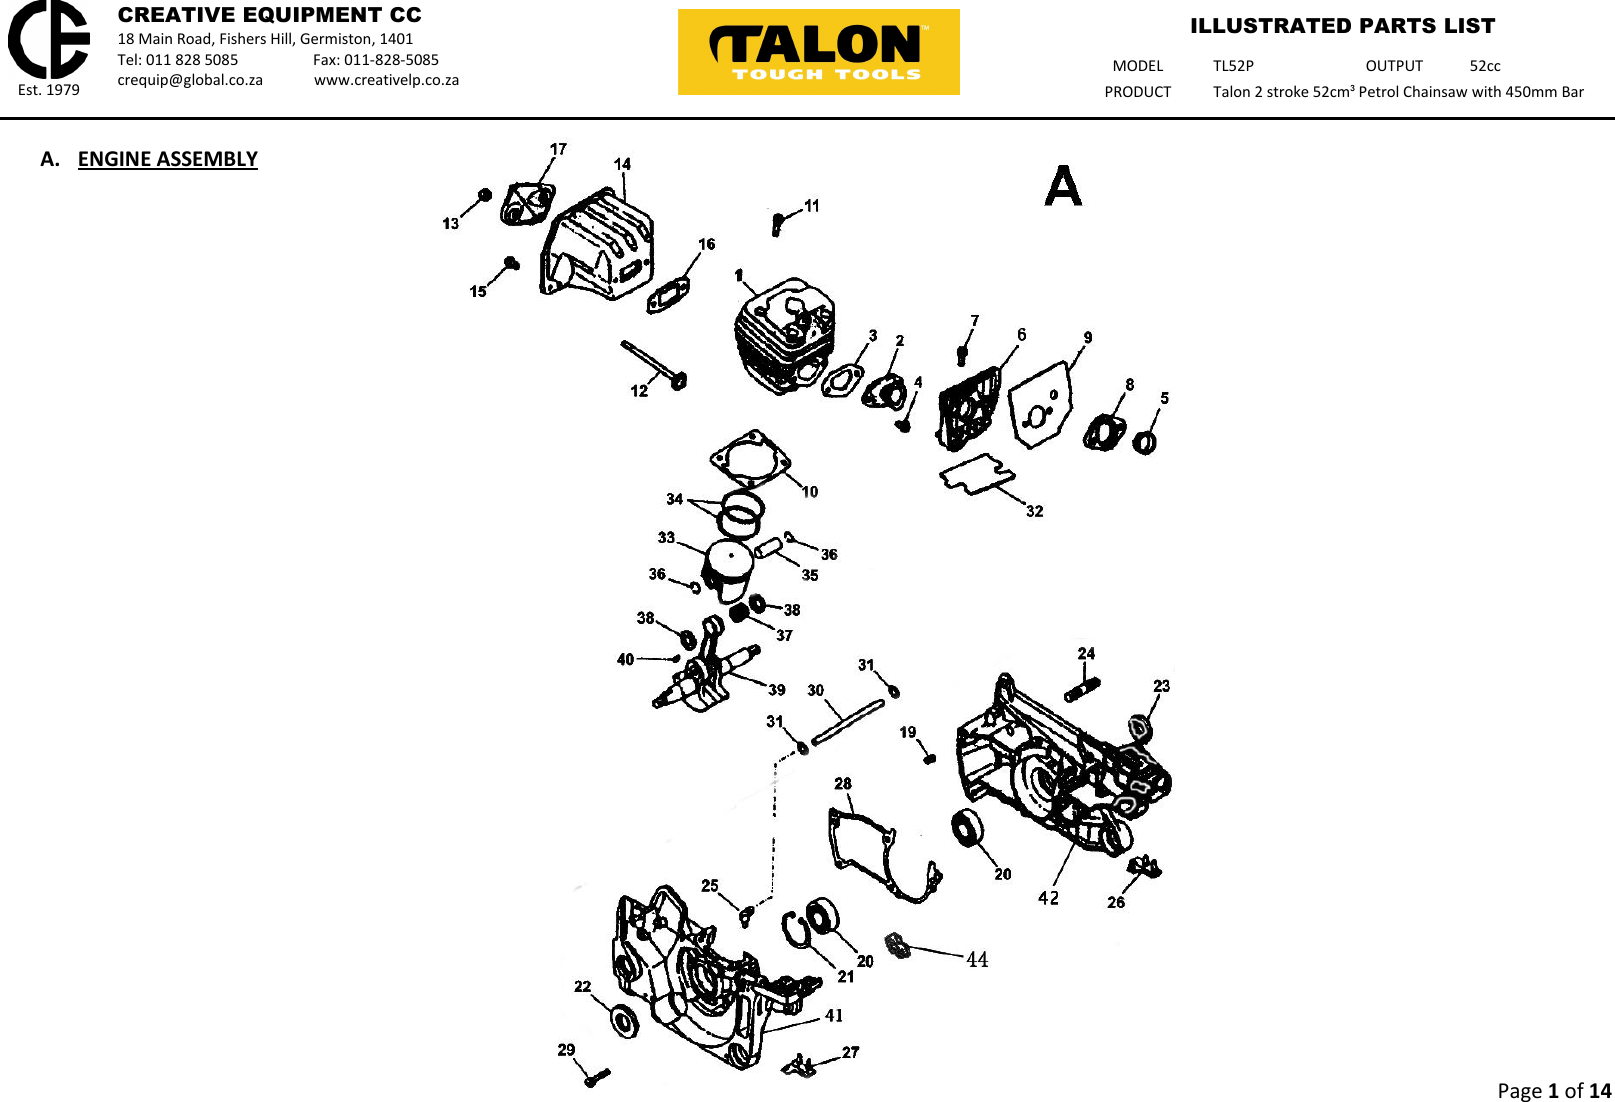 Talon Tools Tl52P Parts List WEB Master Illustrated Petrol